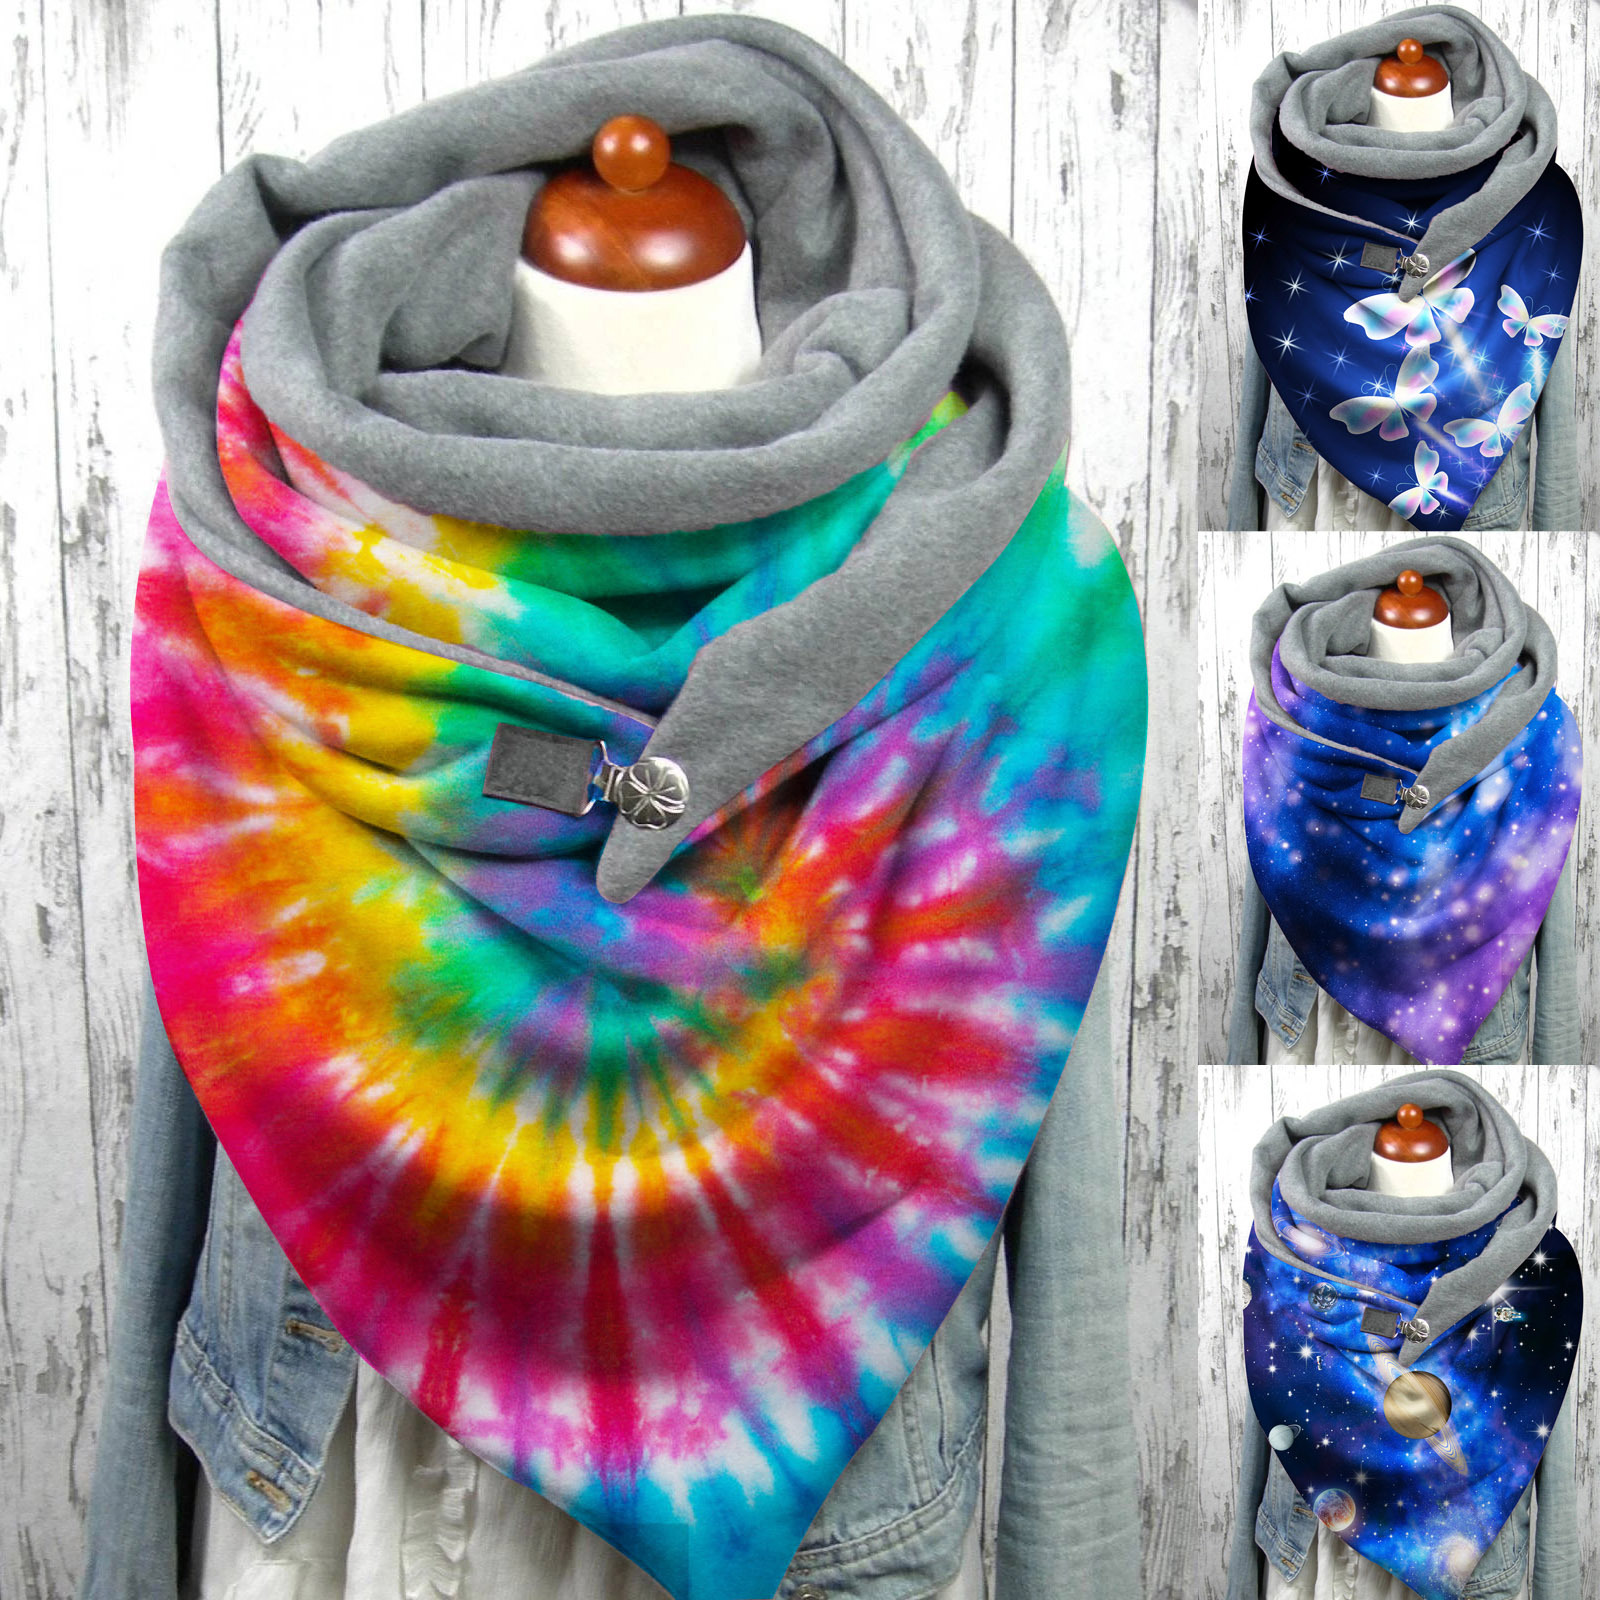 New Women Winter Warm Christmas elk print Scarf Fashion Retro Female Multi-Purpose Shawl Scarf  Outdoor Bandana шарфы женские